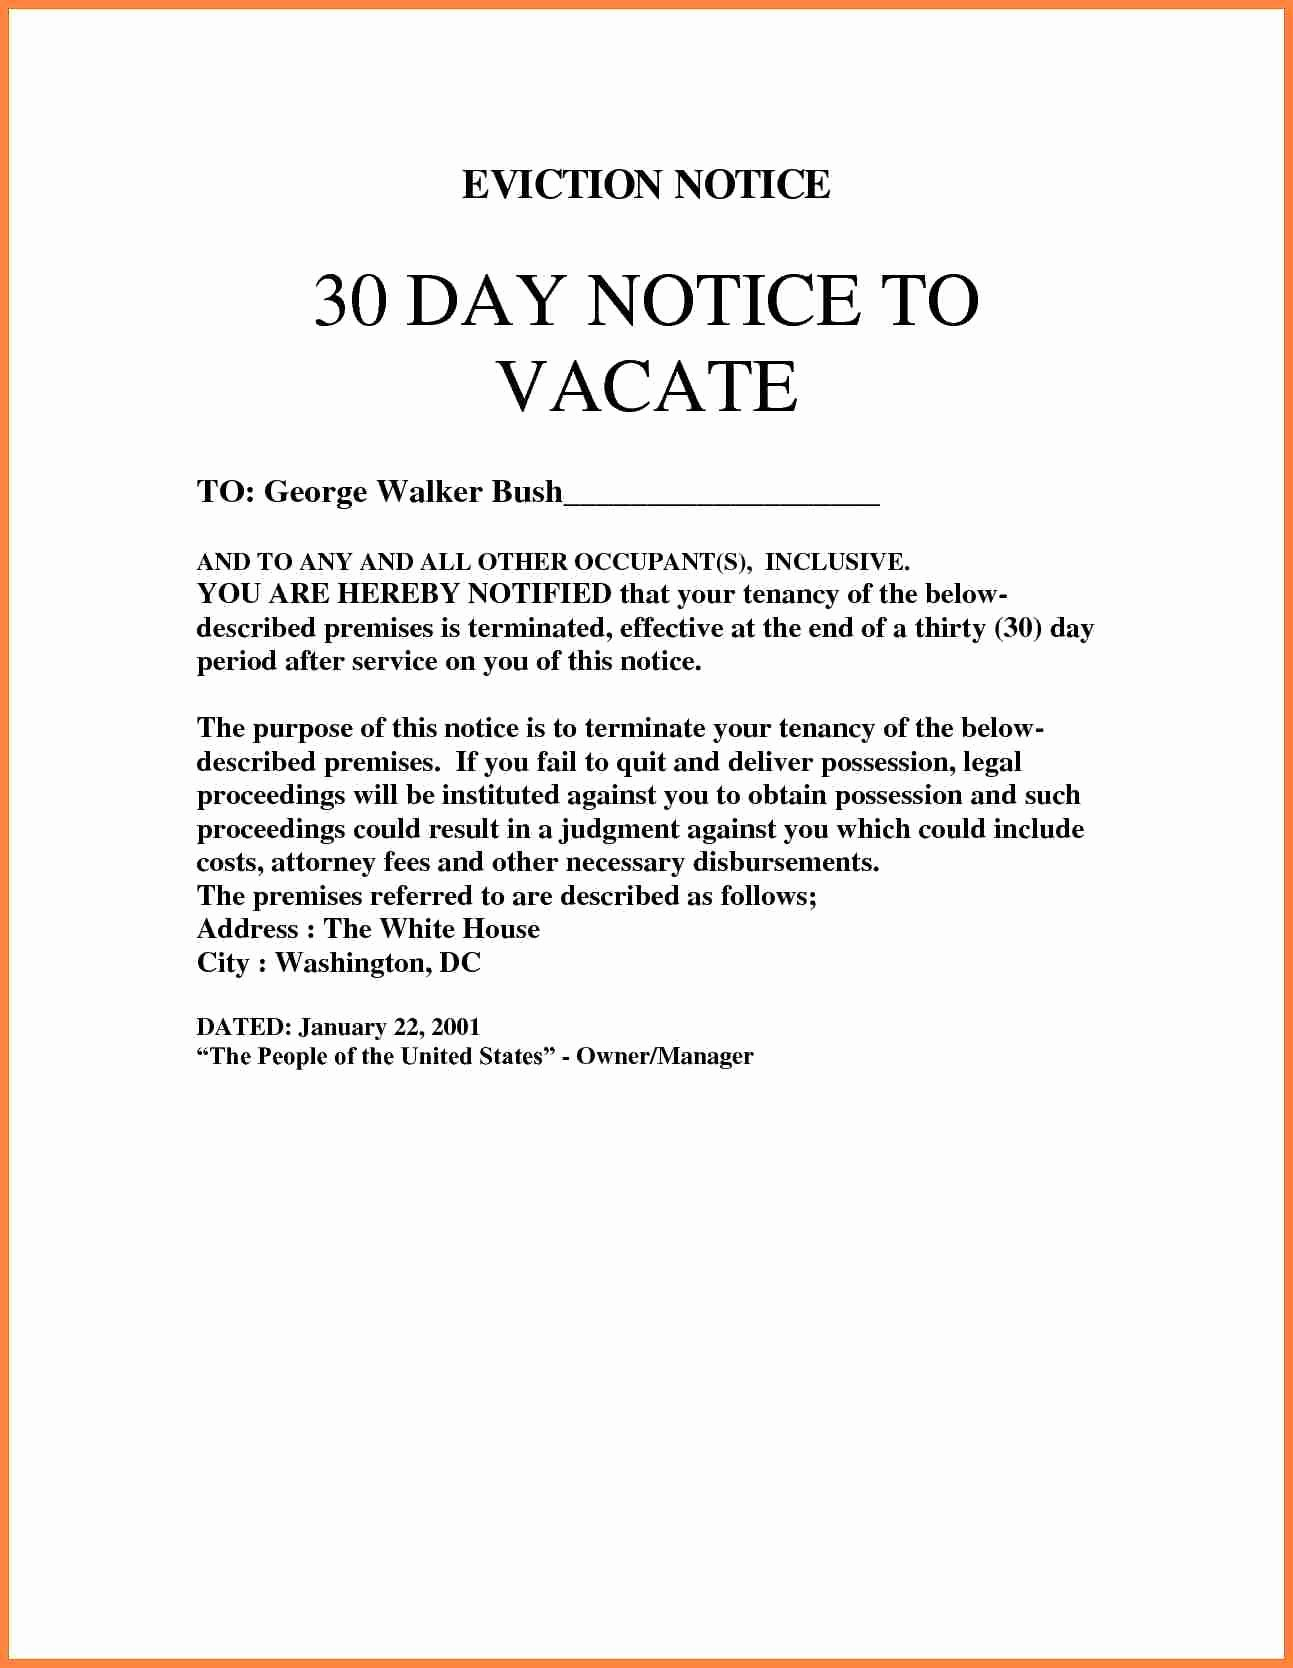 Free Eviction Notice Template Inspirational 4 Eviction Notice Template Uk